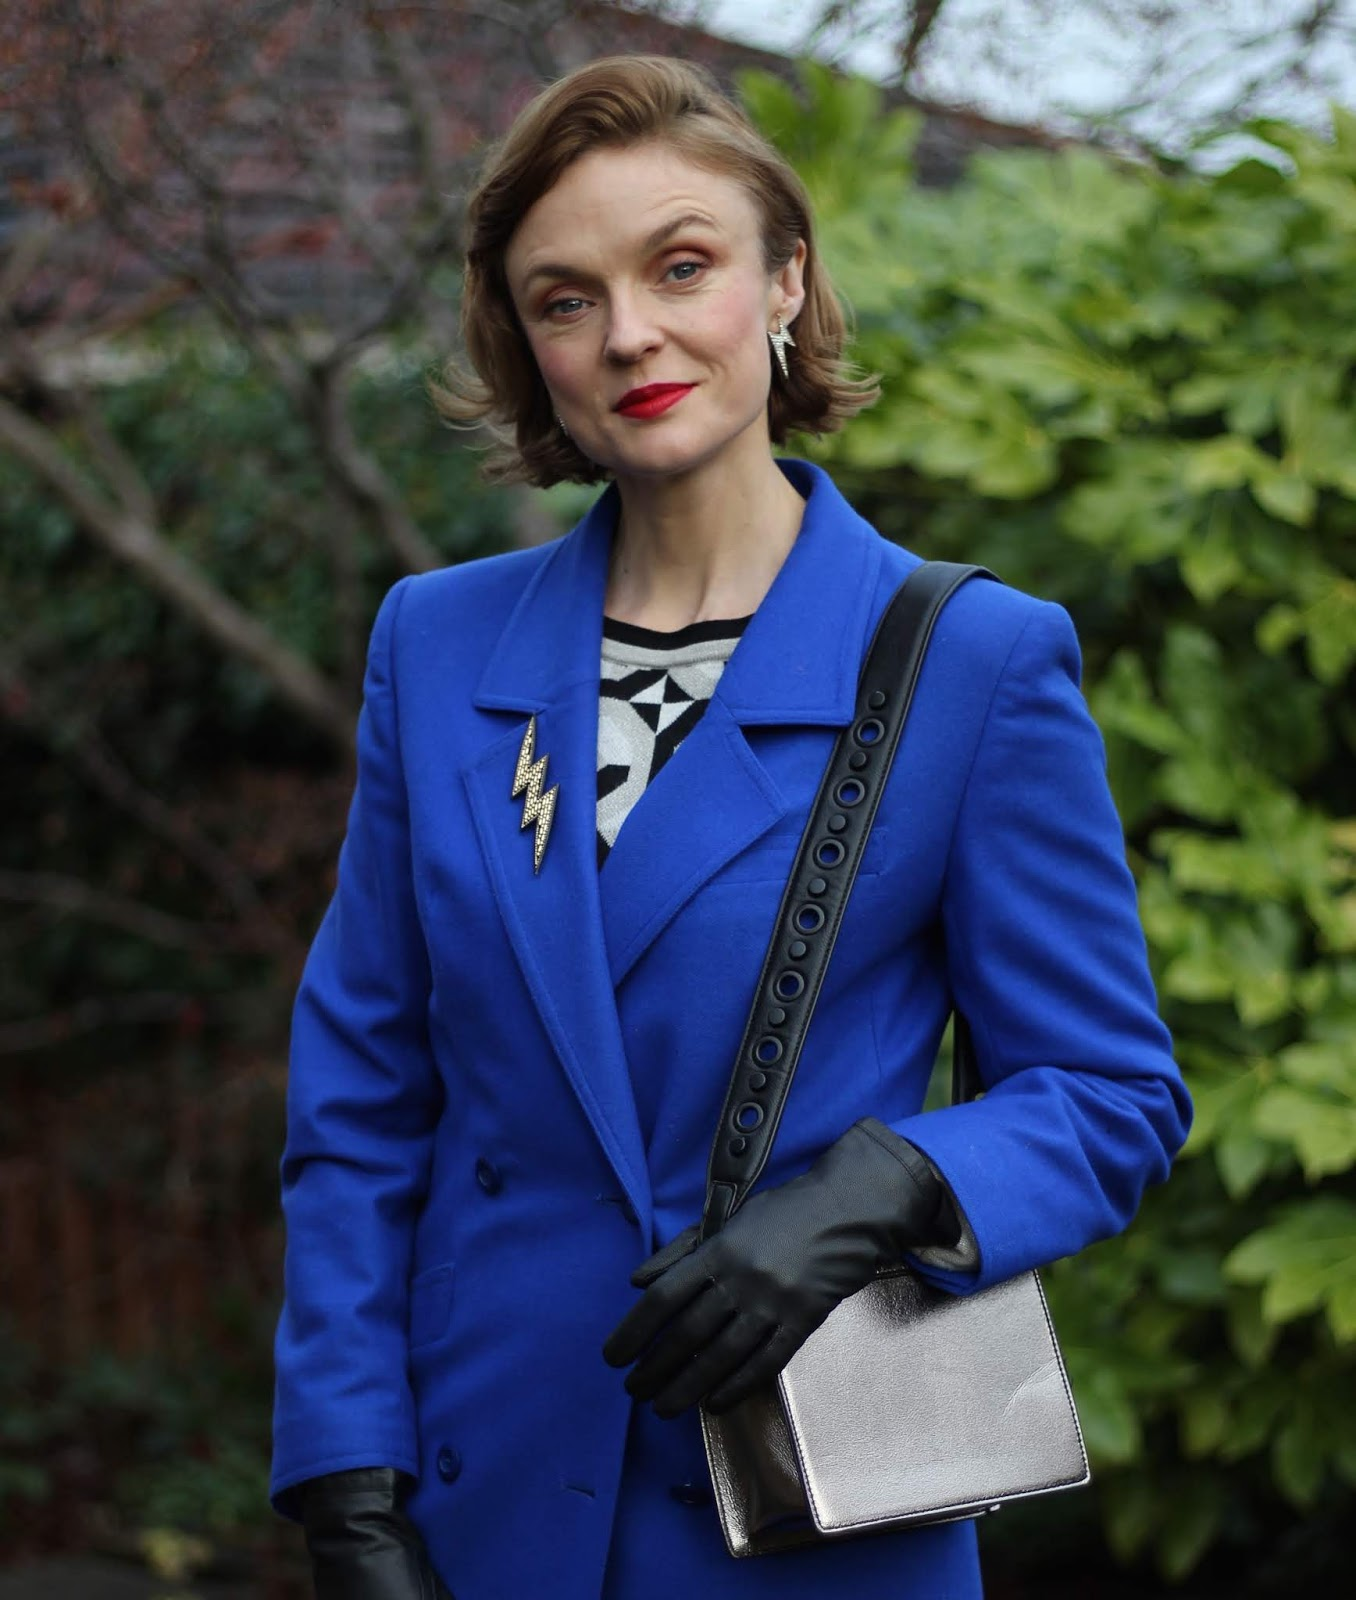 Cobalt Blue Coat, Black Leather Pleated Skirt | Fake Fabulous